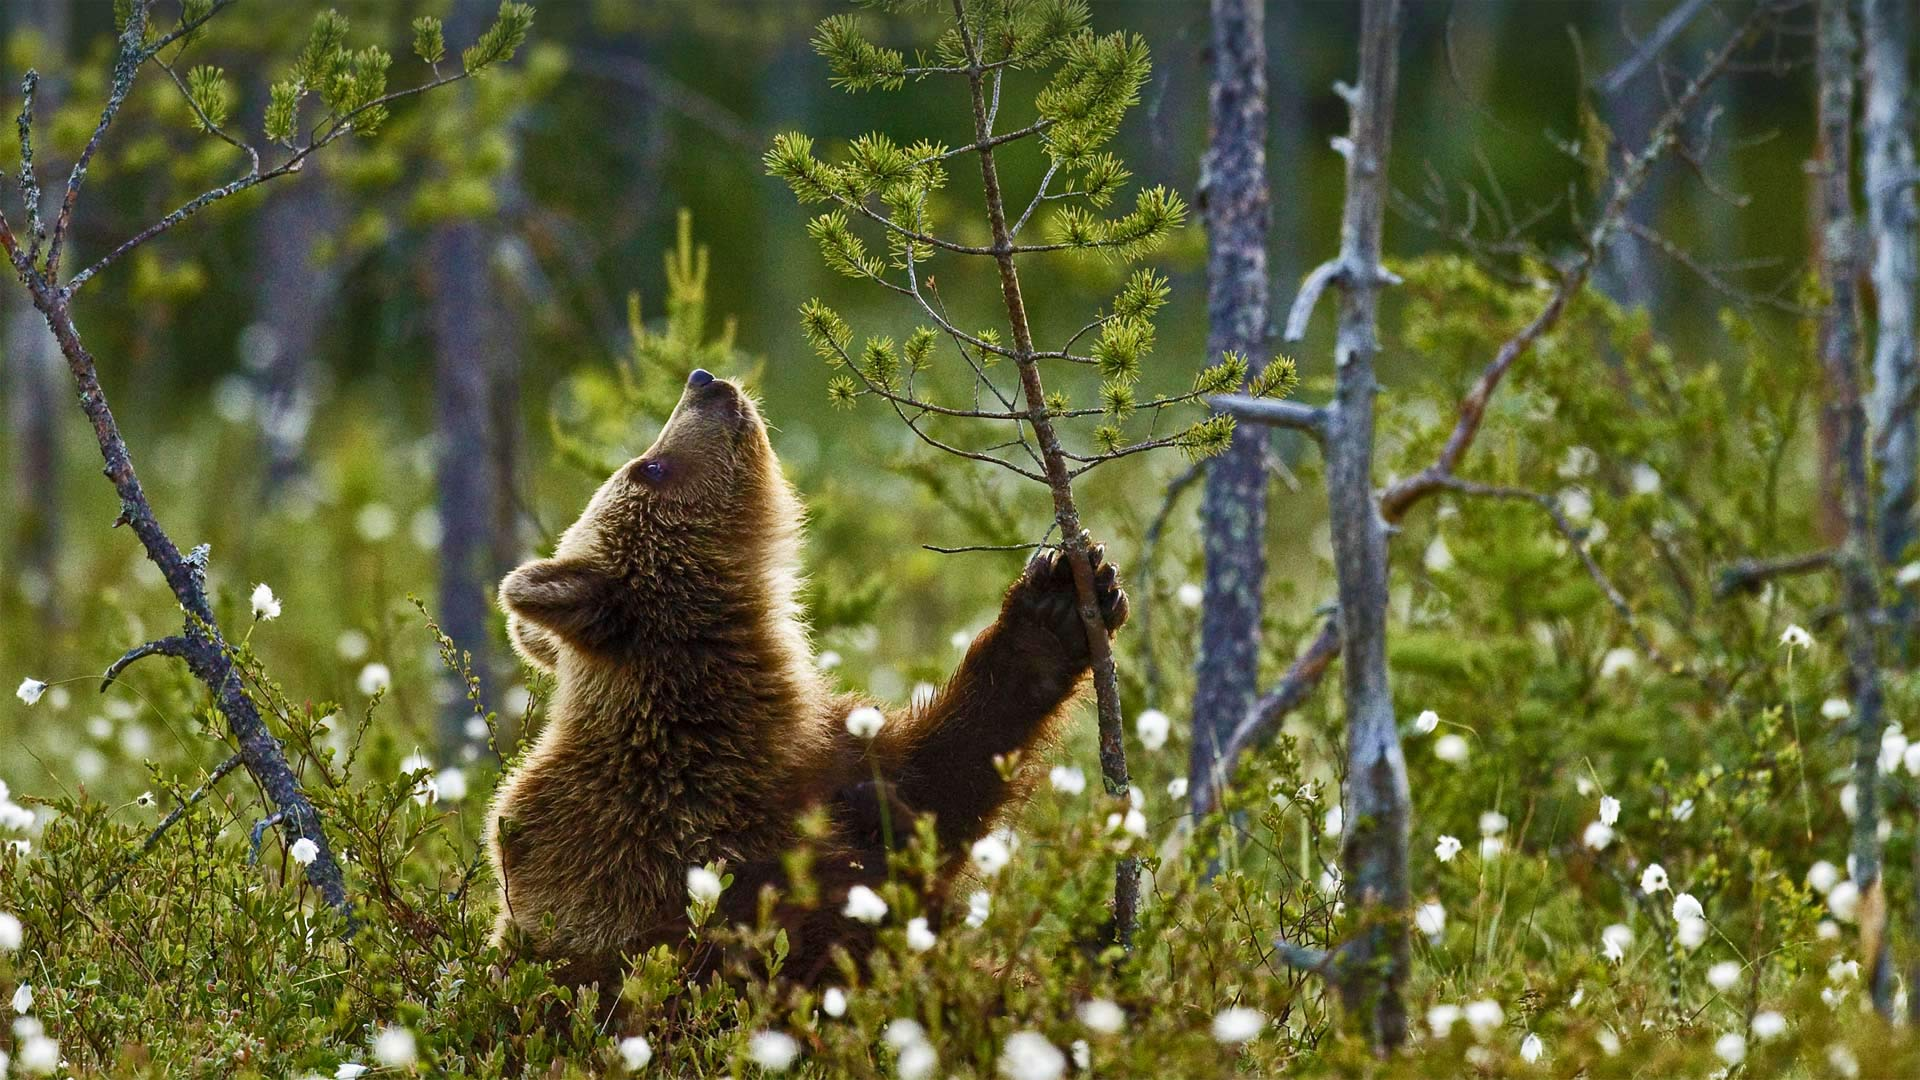 Eurasian brown bear cub in the taiga forest, Finland (© Jules Cox/Minden Pictures)(Bing United States)